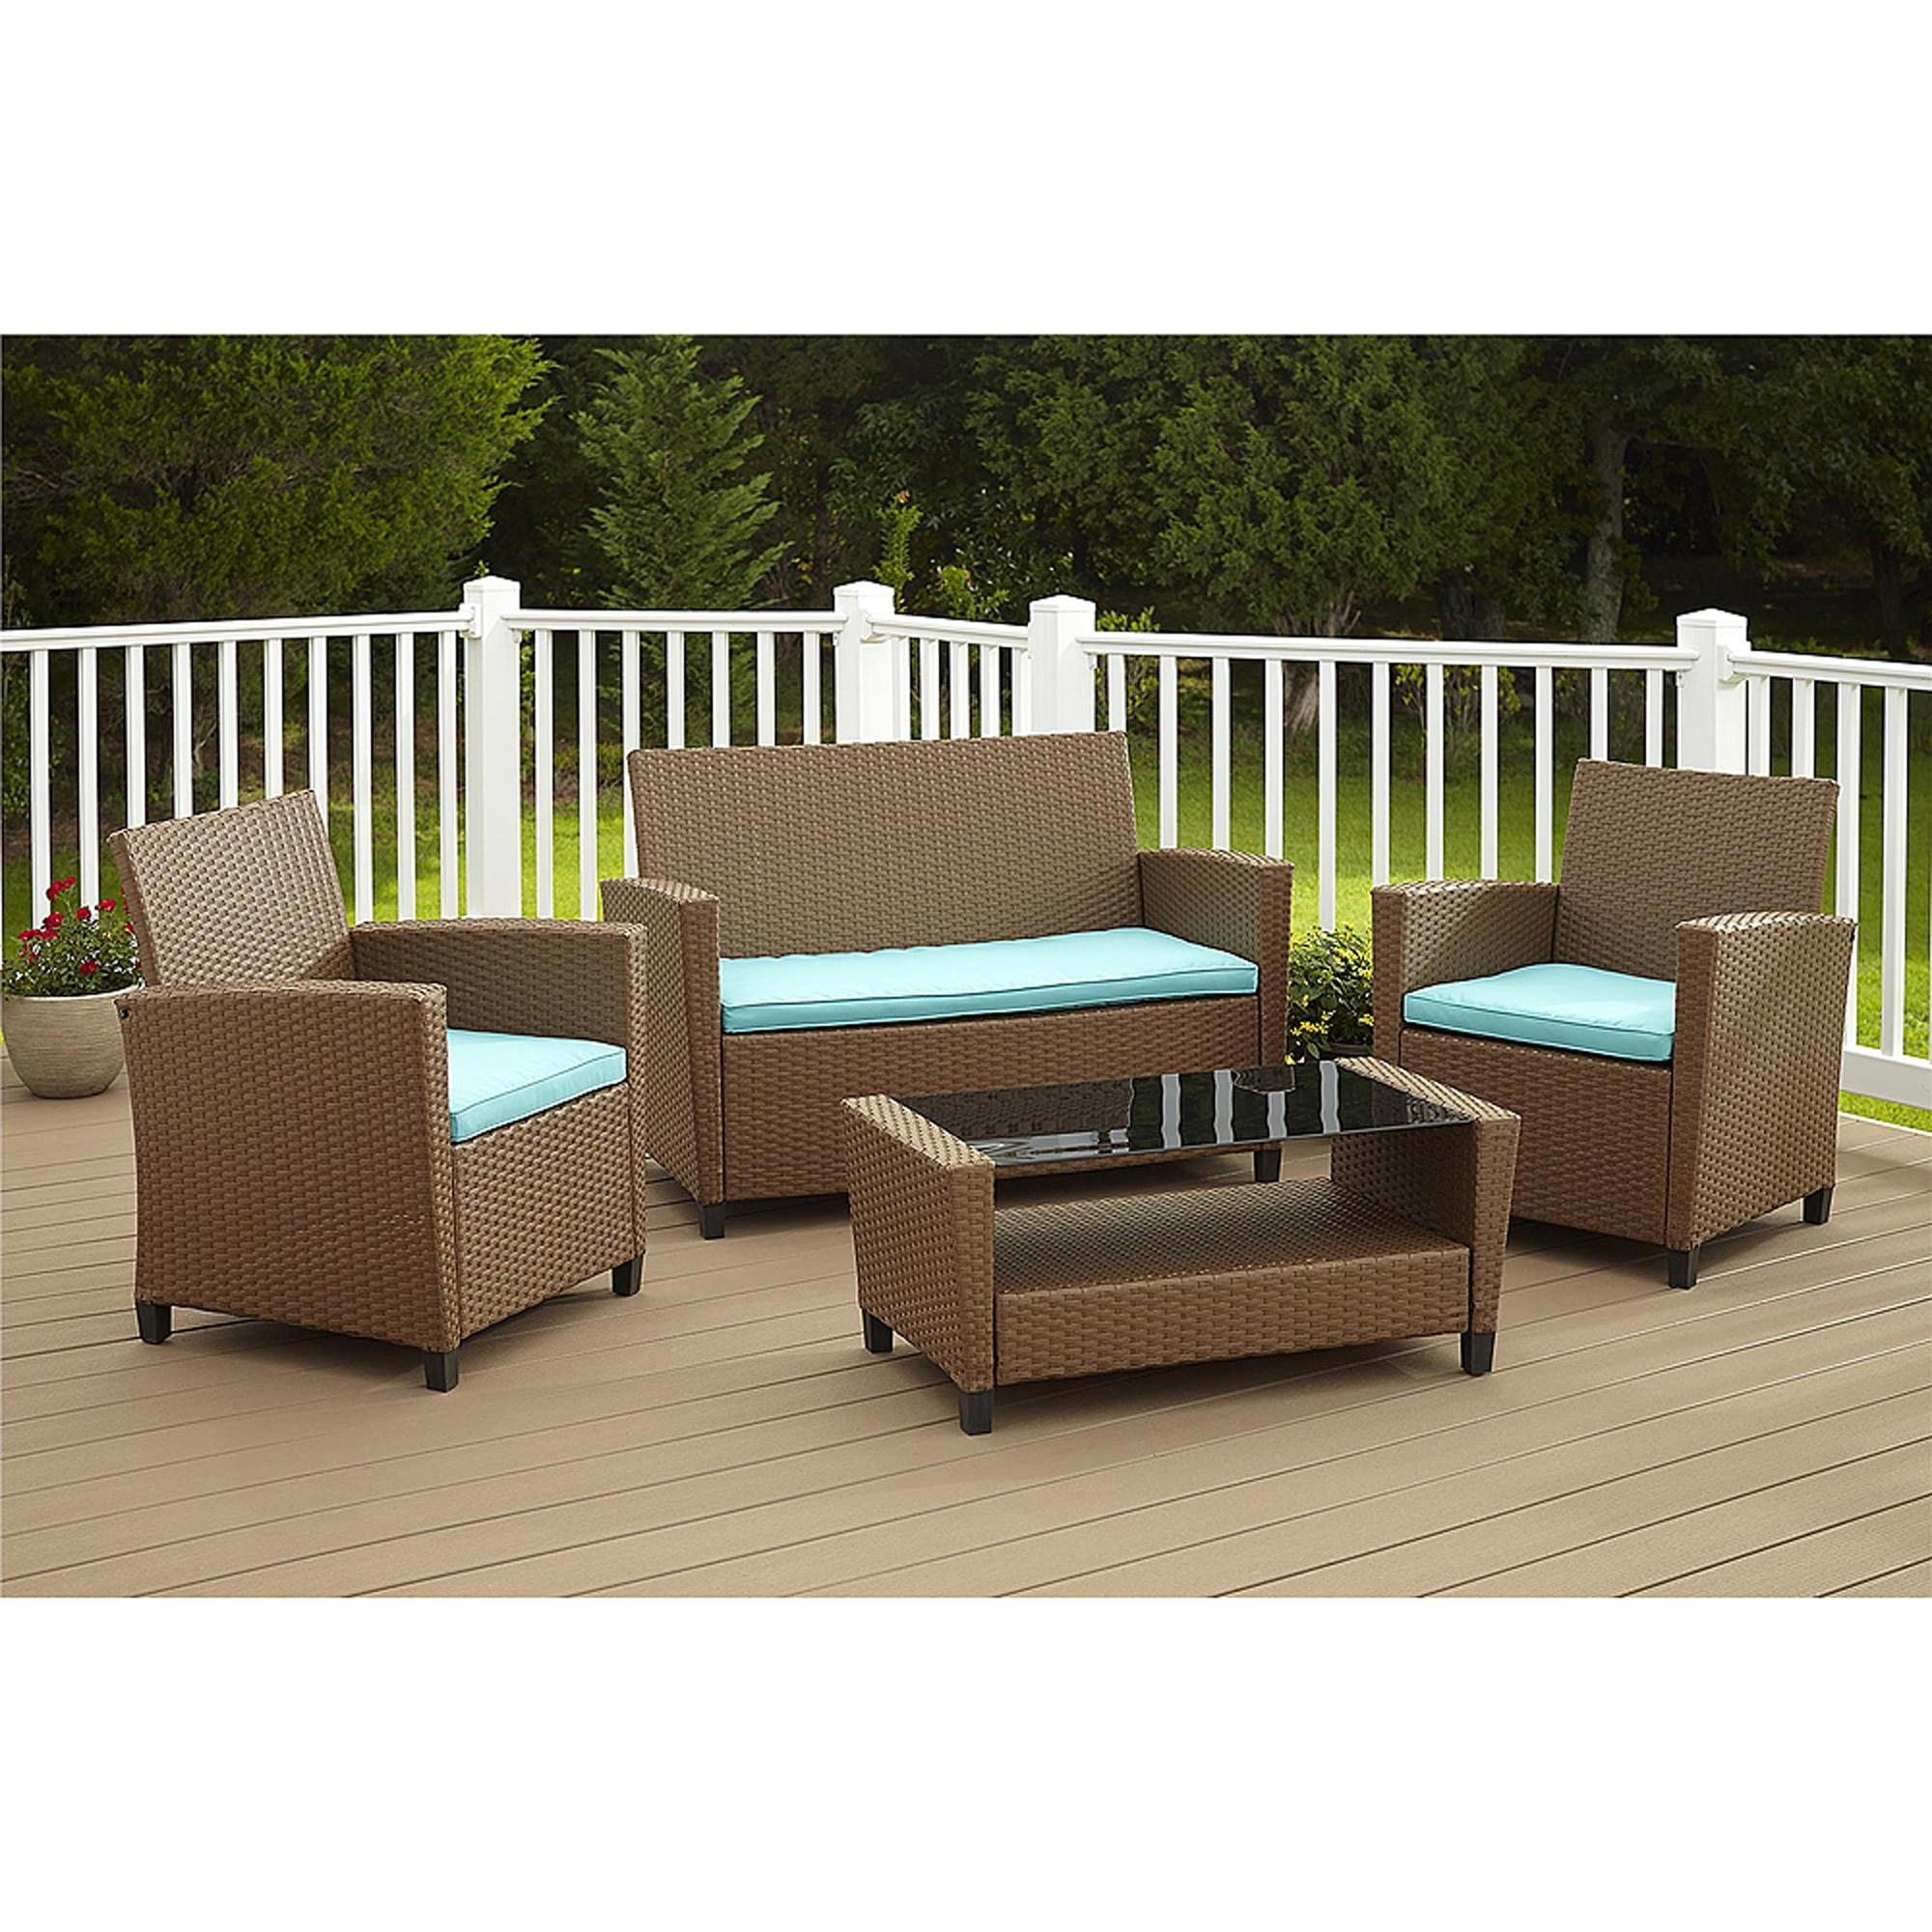 Cosco Outdoor Malmo 4 Piece Resin Wicker Patio Conversation Set Regarding Black Wicker Sofas (Image 9 of 20)